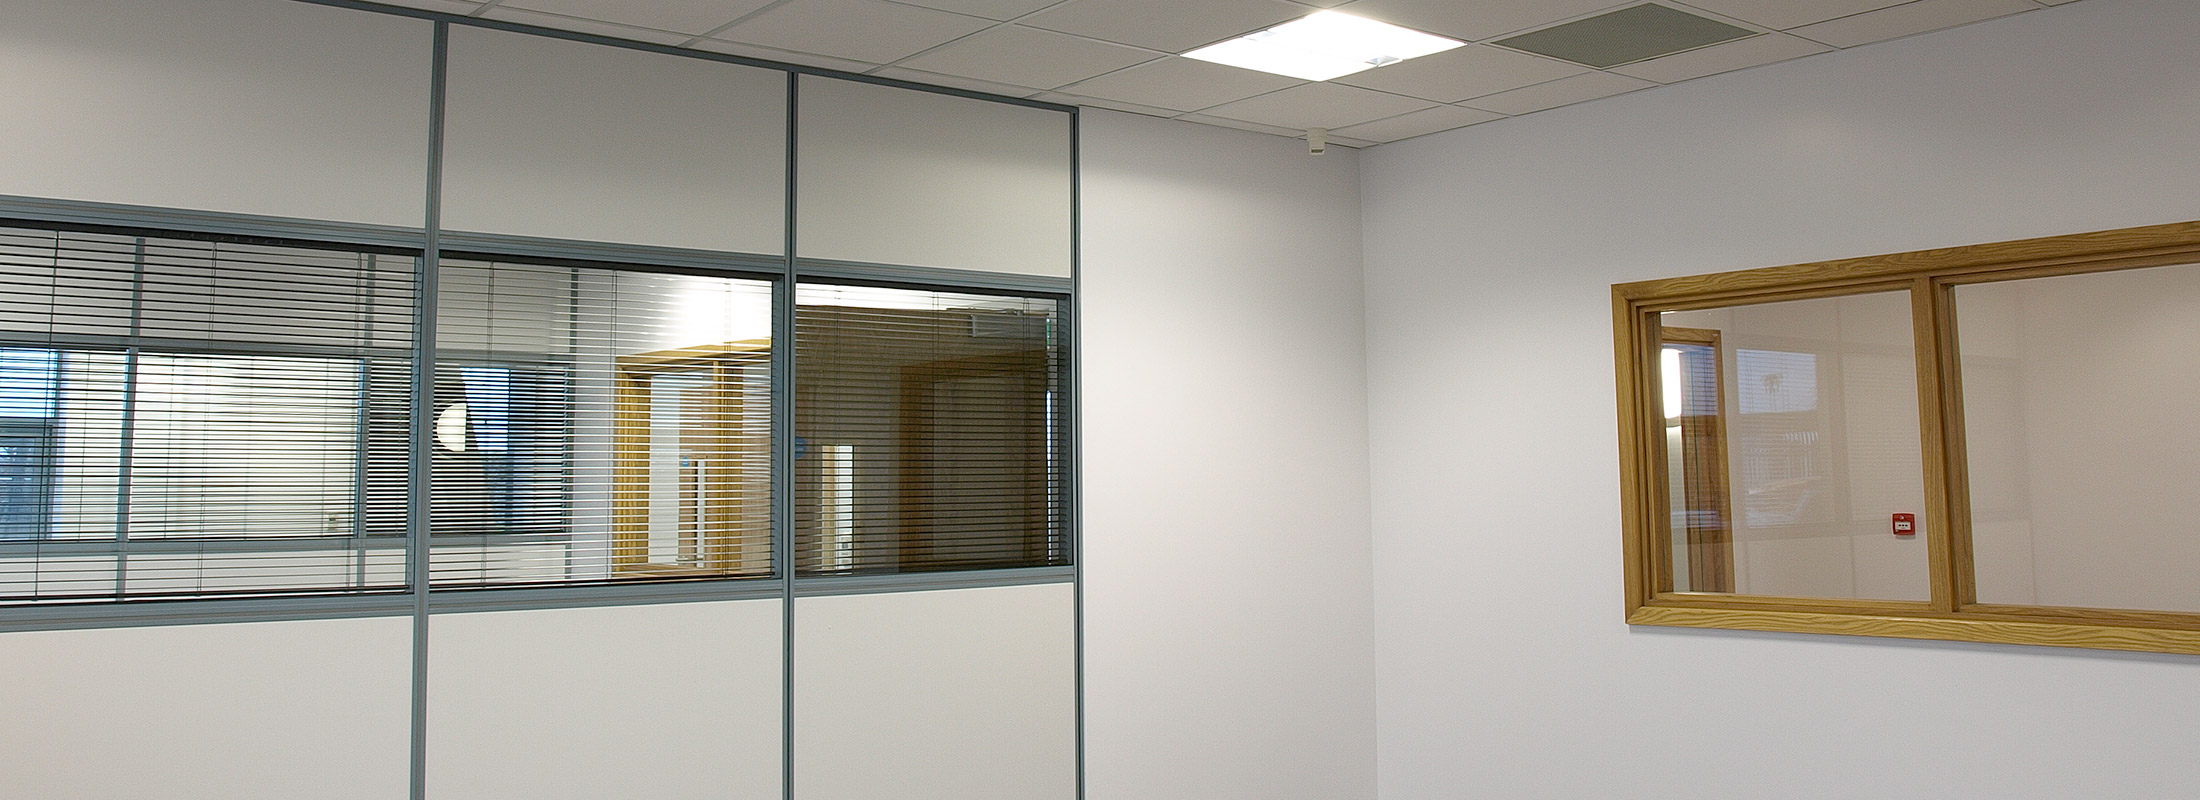 ASC | Buildings Fit-out-Suspended Ceilings-Partitioning-Plastering-East Anglia